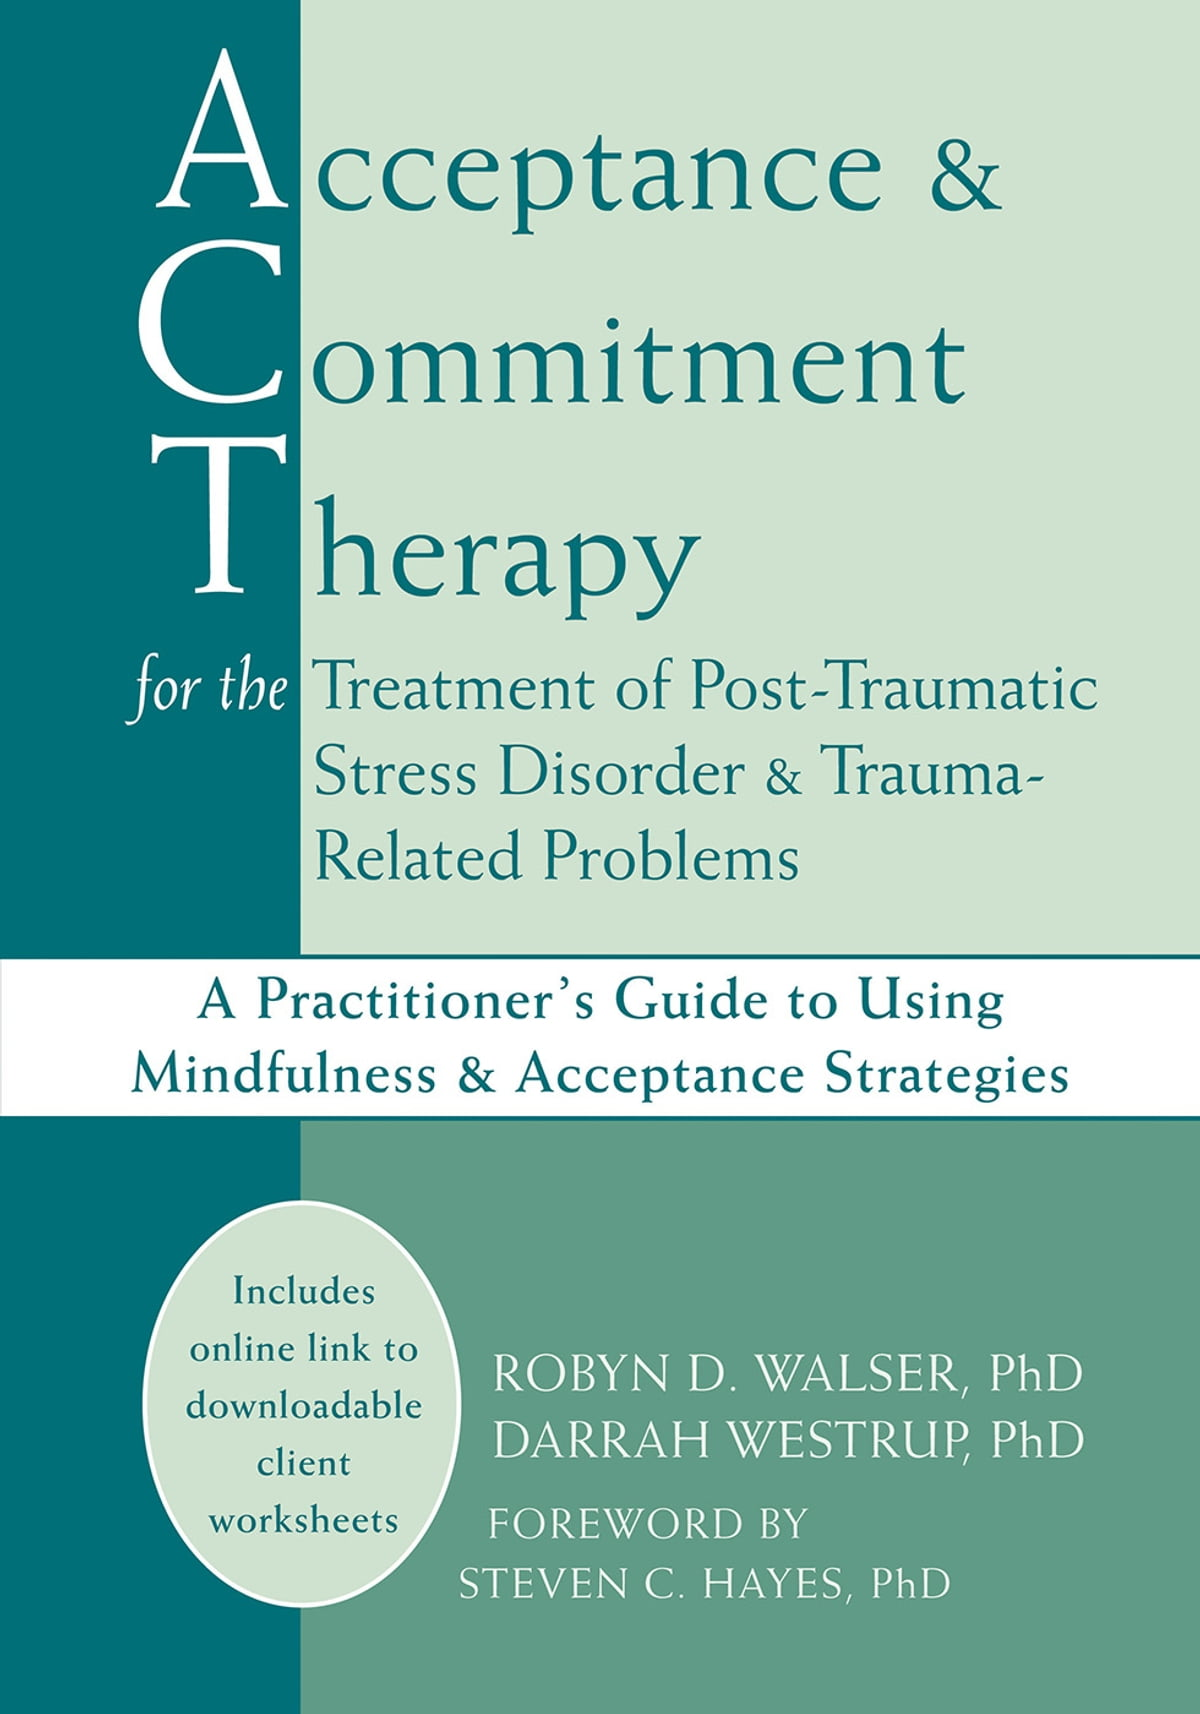 Acceptance And Commitment Therapy For The Treatment Of Post Traumatic Stress Disorder And Trauma